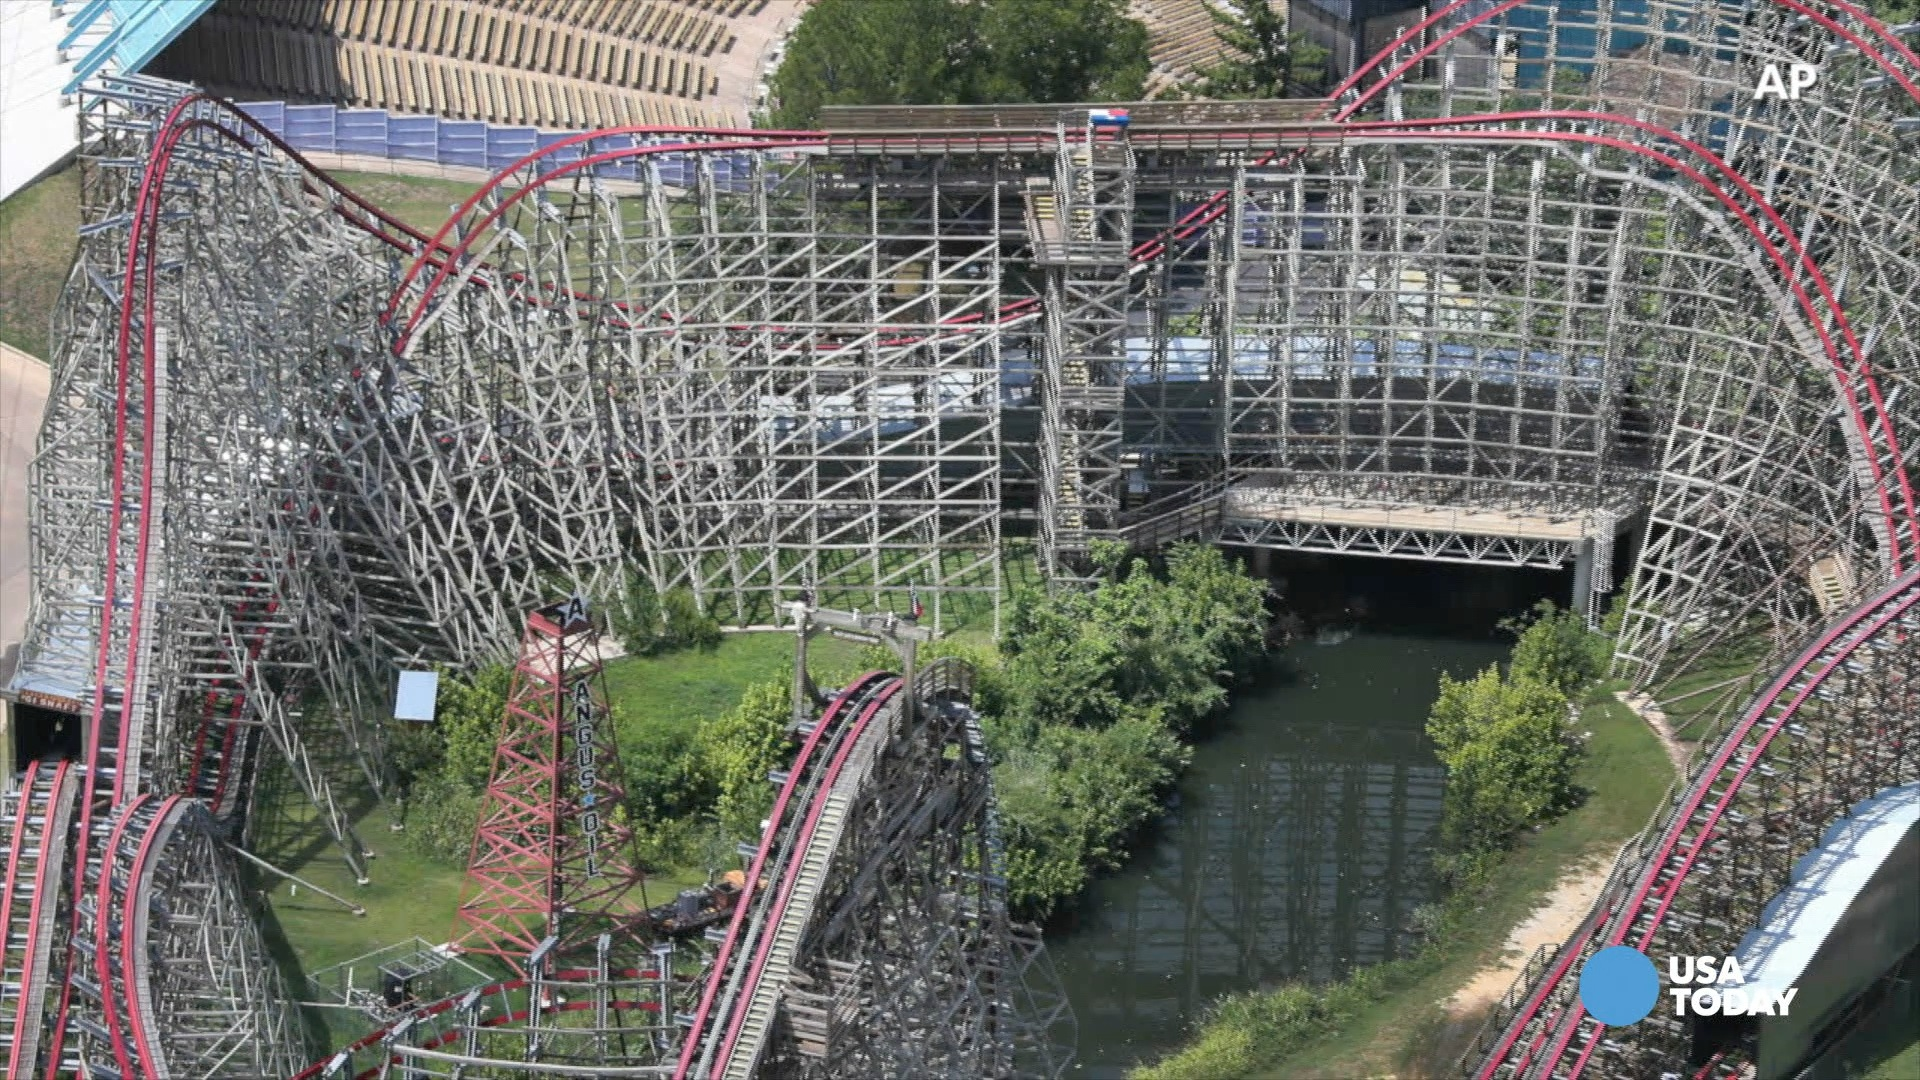 Are roller coasters safe?